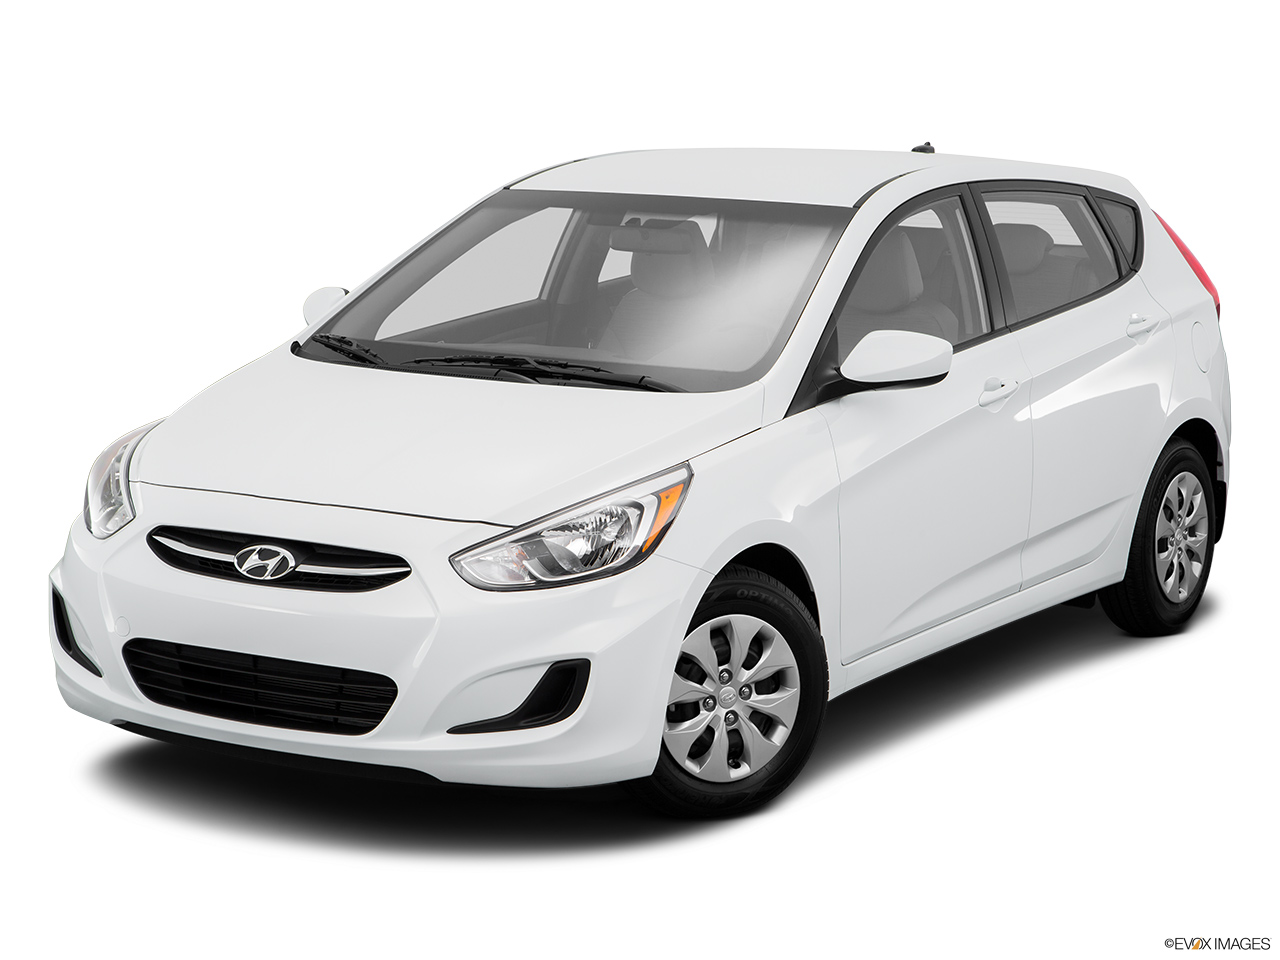 hyundai accent hatchback price in egypt new hyundai accent hatchback photos and specs yallamotor. Black Bedroom Furniture Sets. Home Design Ideas